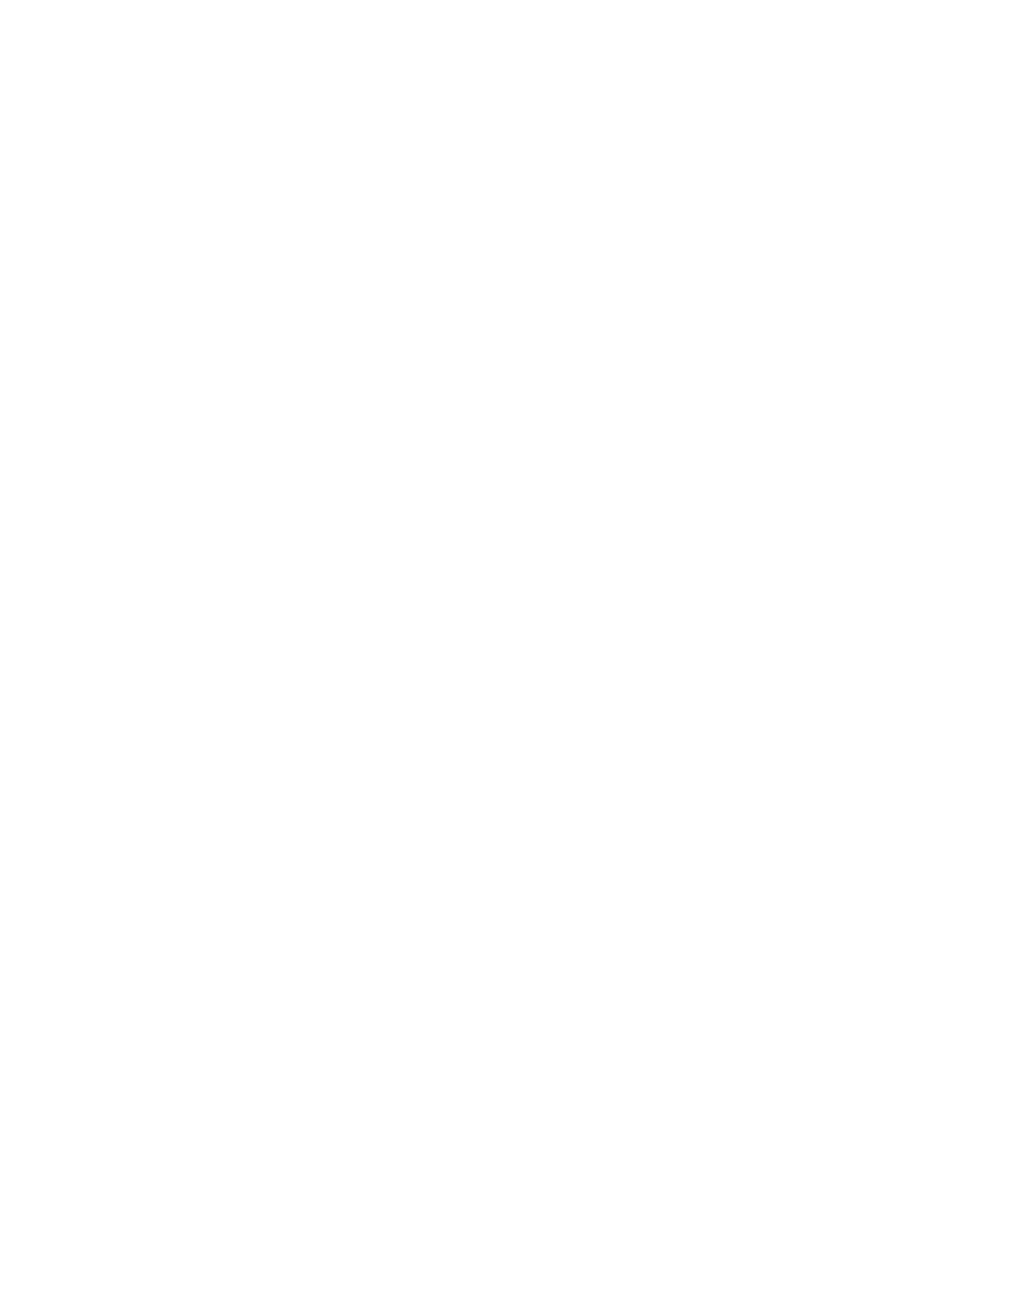 teeVillain: On Wednesdays We Wear Black